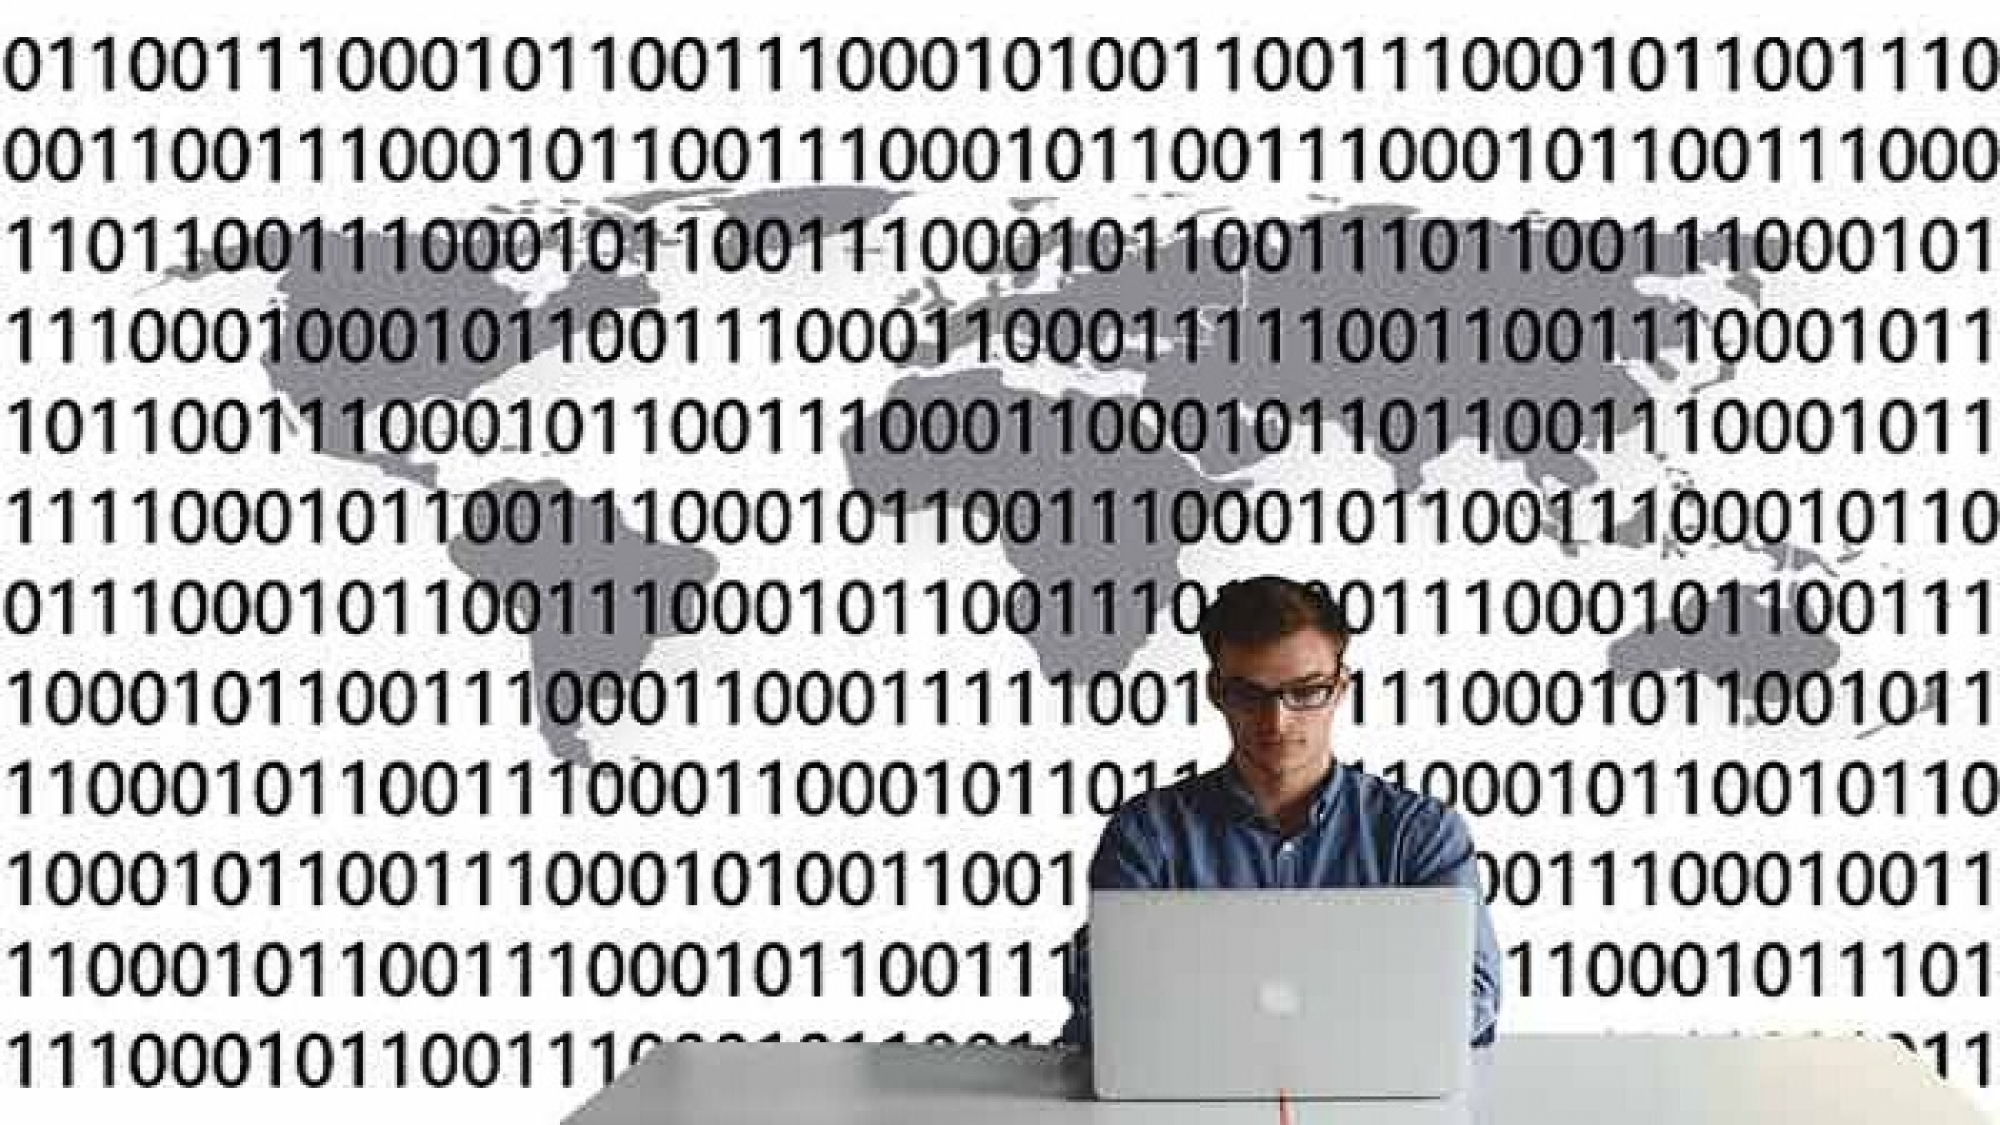 What Can You Do With a Degree in Computer Science